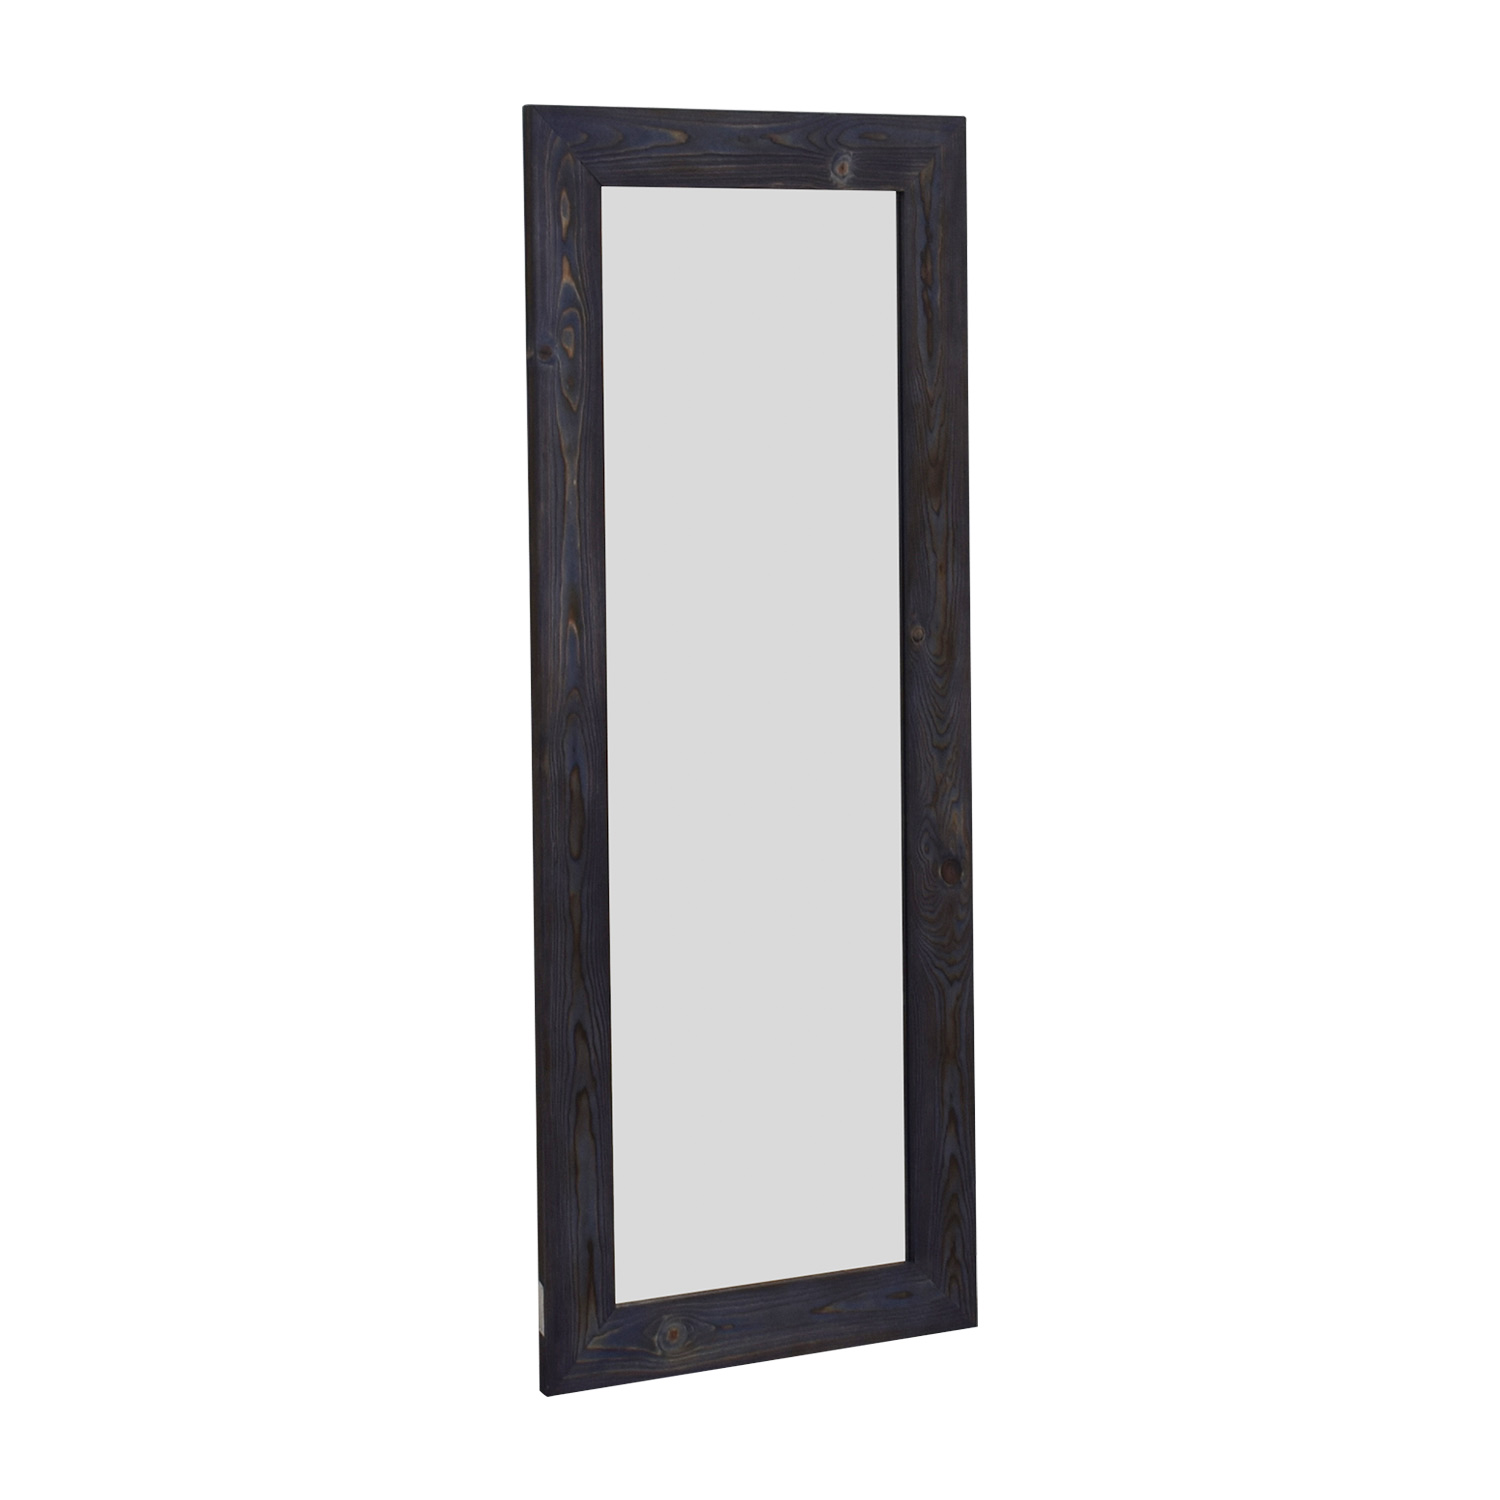 buy Muller Designs Muller Designs Reclaimed Wood Full-Length Mirror online